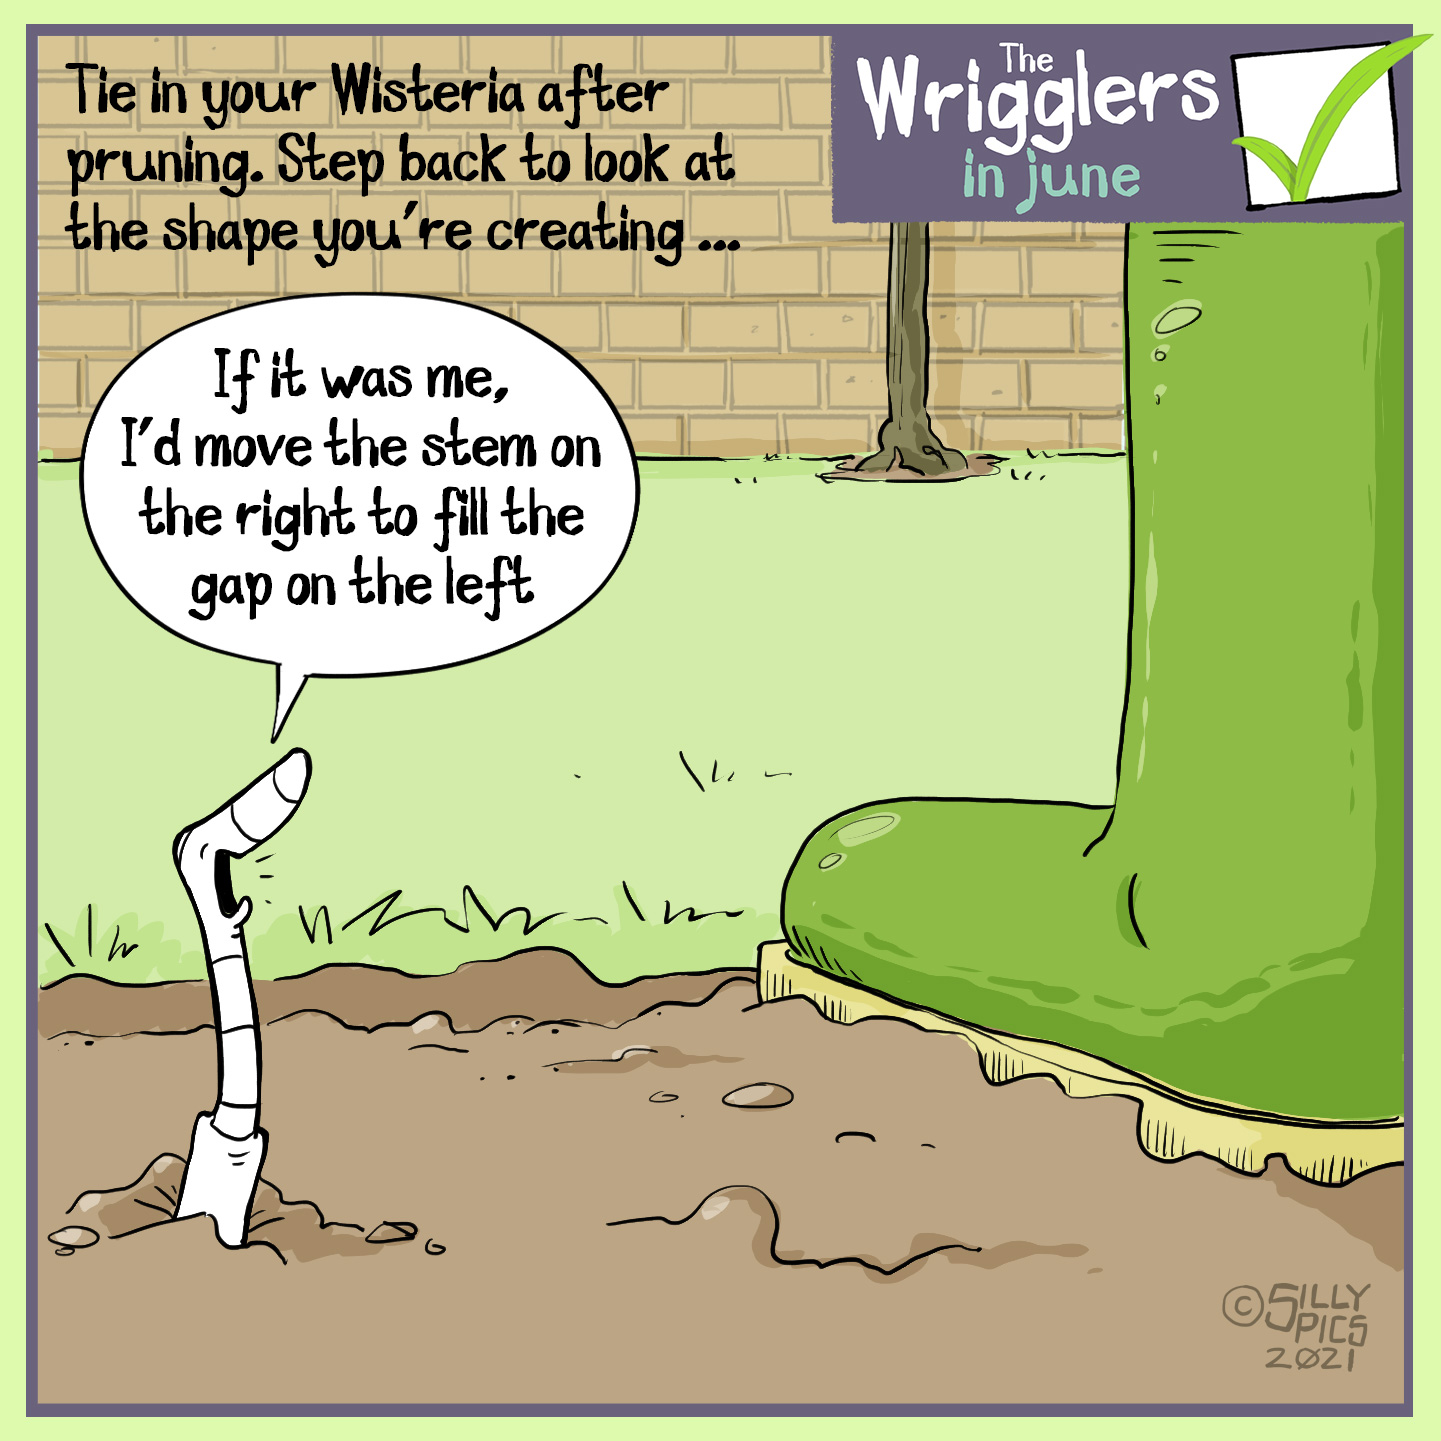 """The cartoon reads, Tie in your Wisteria after pruning. Step back to look at the shape you are creating. A worm is standing next to a wellington boot, standing back from the wisteria and looking at it. looking up at the human, the worm says, """" If it was me, I'd move the stem on the right to fill the gap on the left."""""""